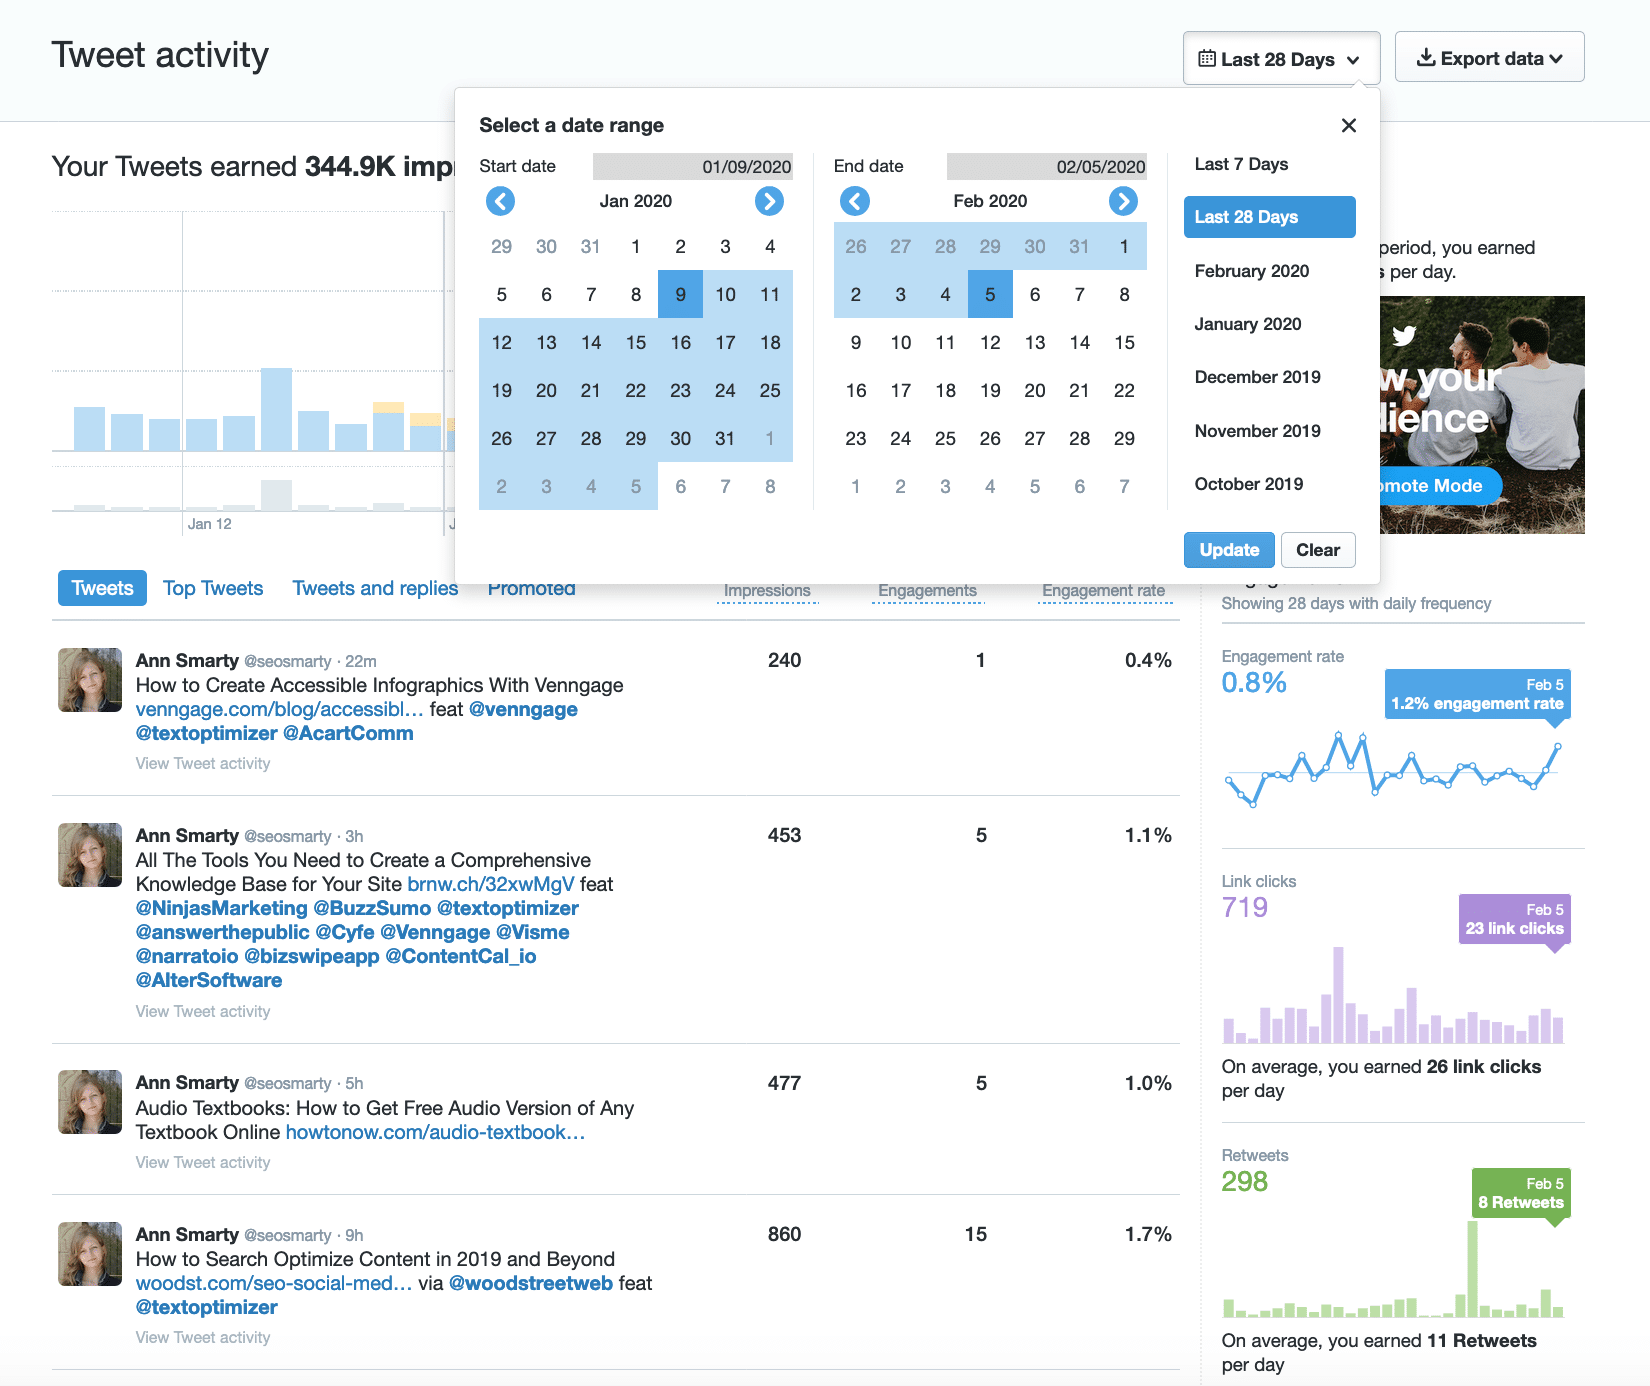 tweet activity according to twitter analytics